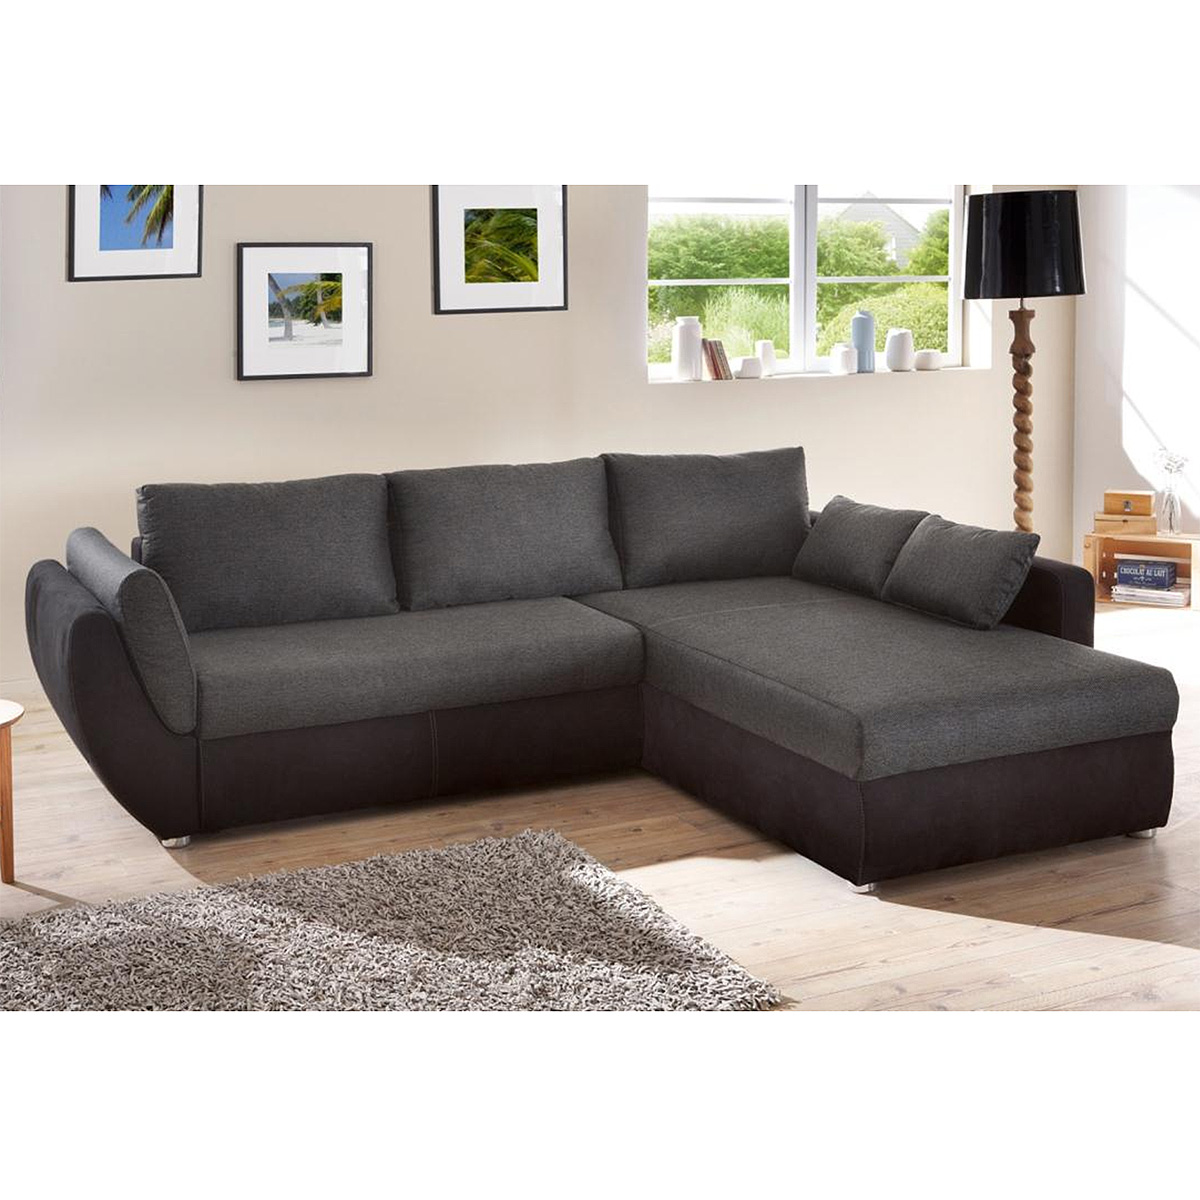 wohnlandschaft taifun sofa ecksofa schwarz grau braun. Black Bedroom Furniture Sets. Home Design Ideas